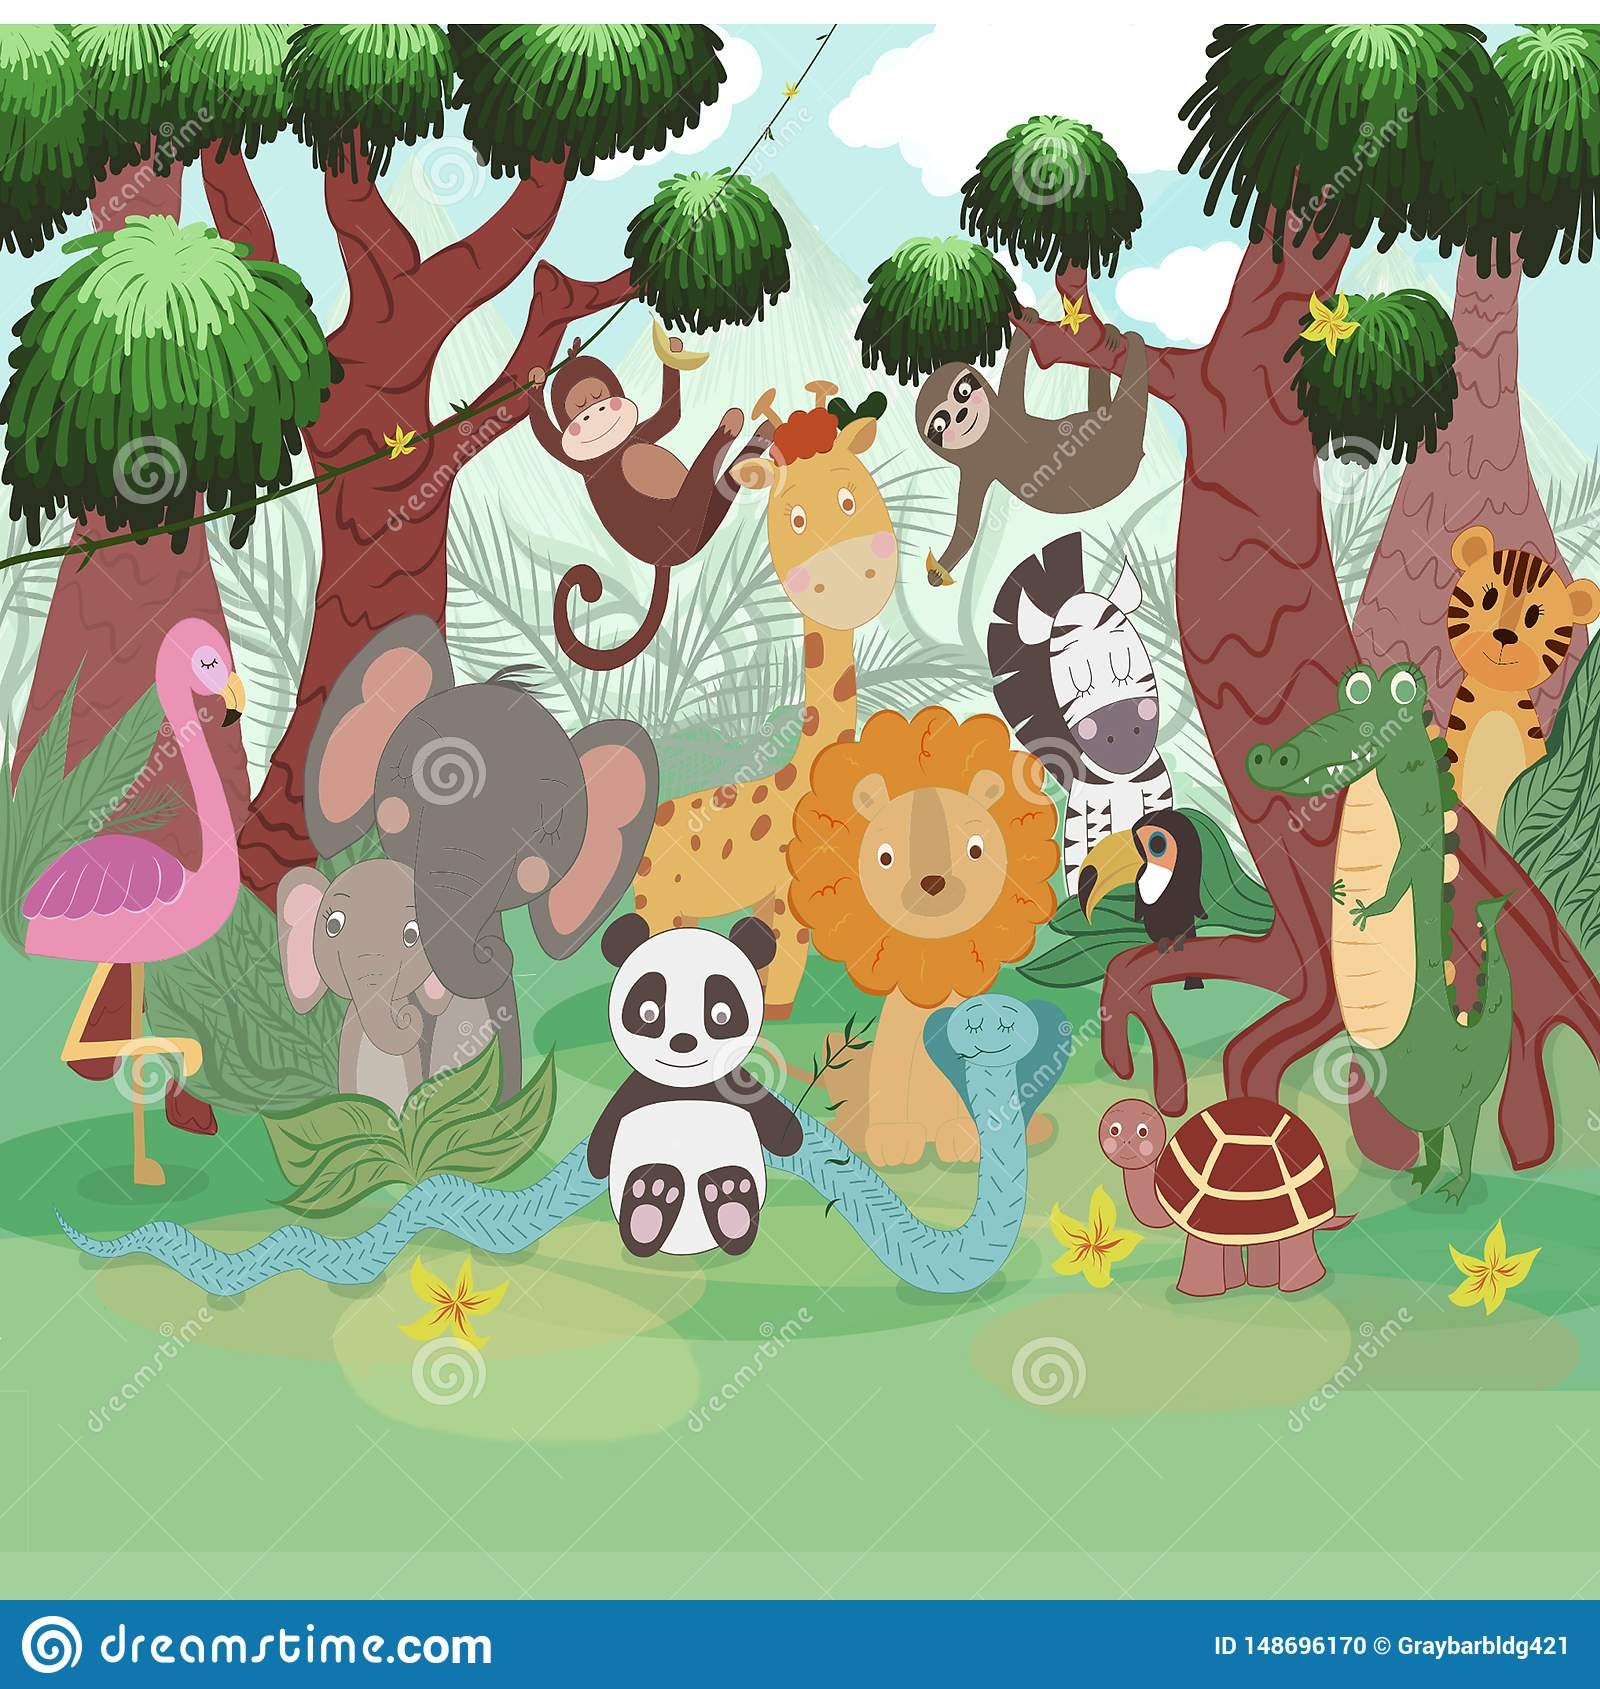 A lot of animals on the tree and plants